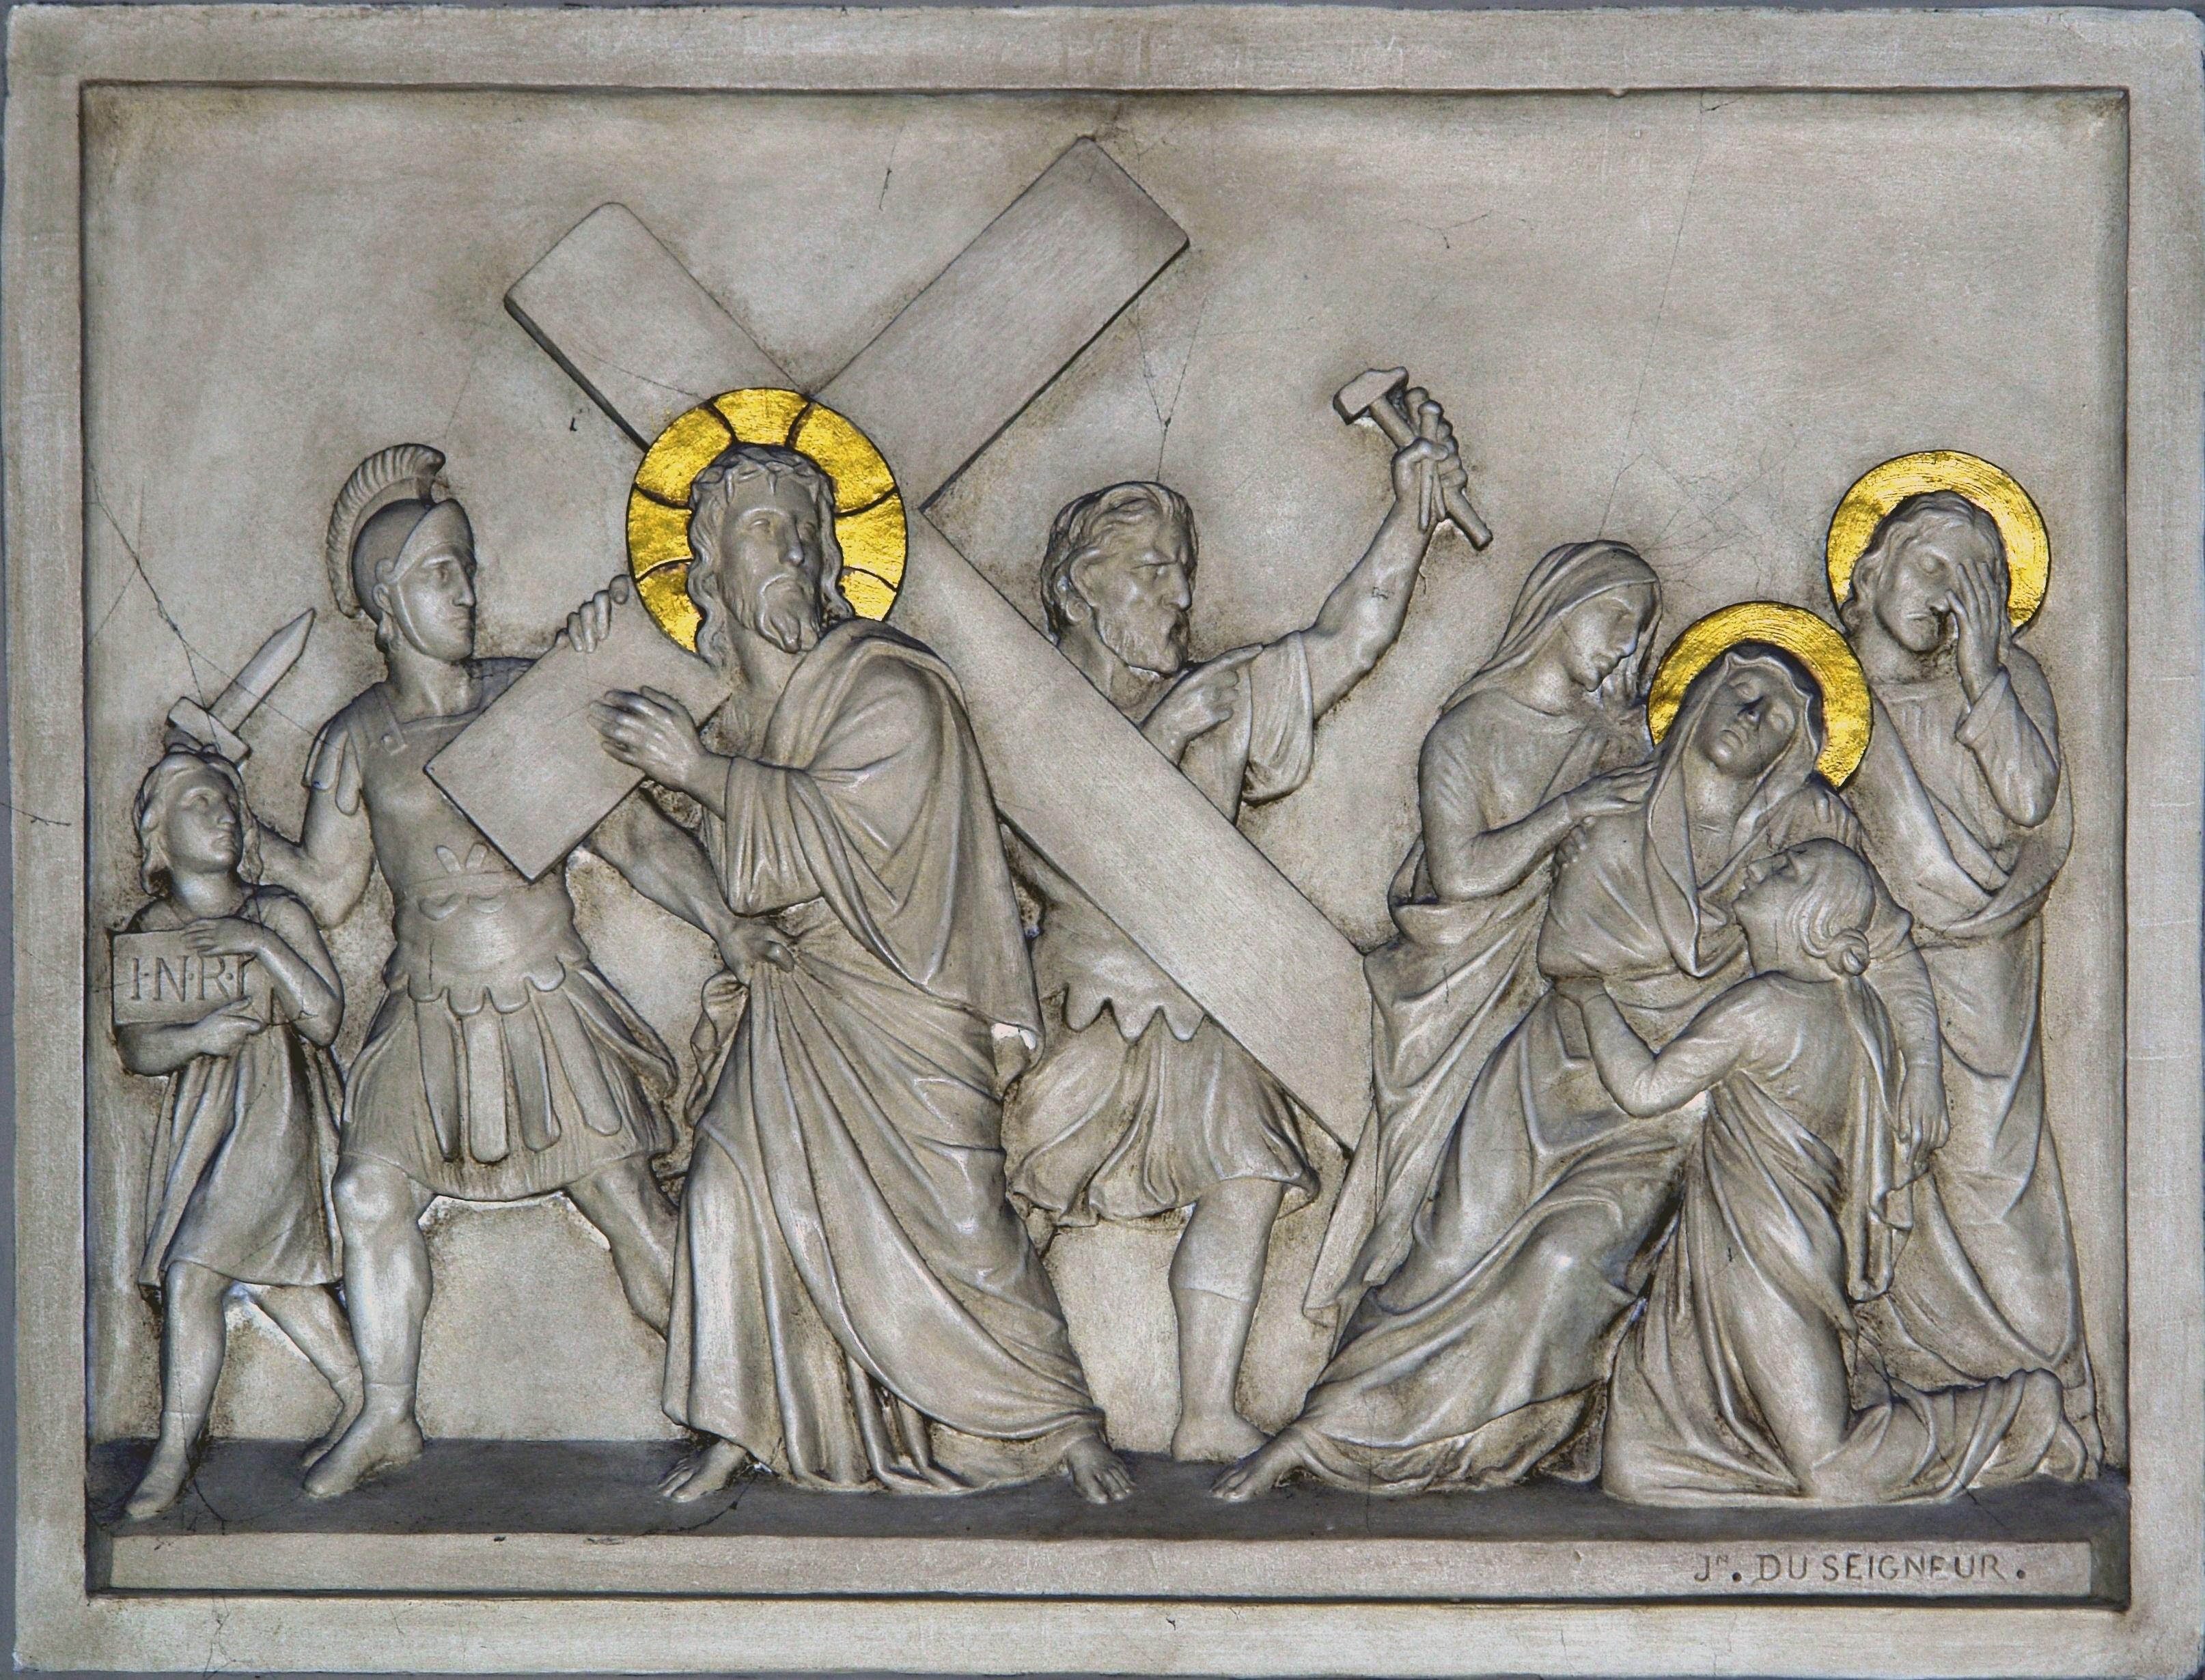 The Way of the Cross: A Meditation for Lent